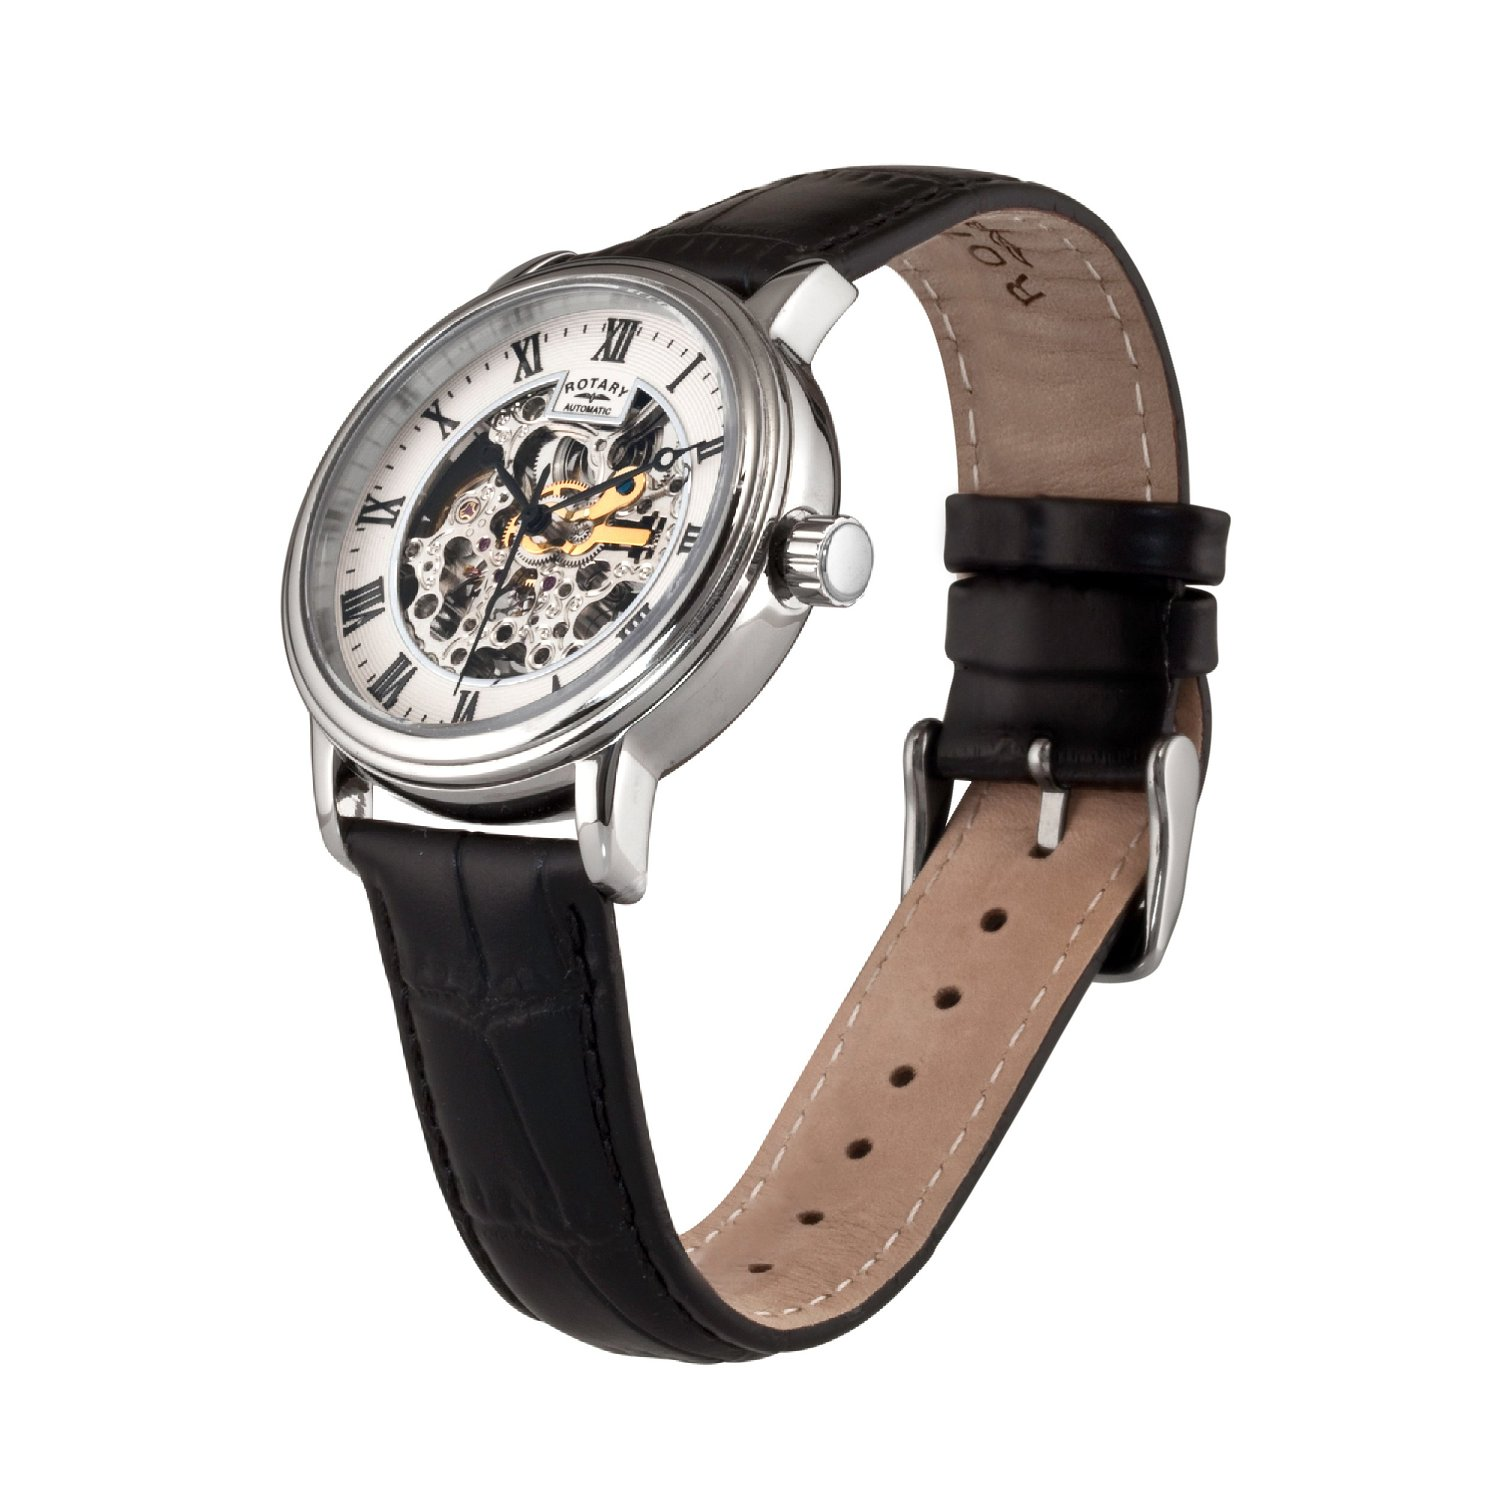 Rotary Men's Automatic Watch with White Dial Analogue Display and Black Leather Strap